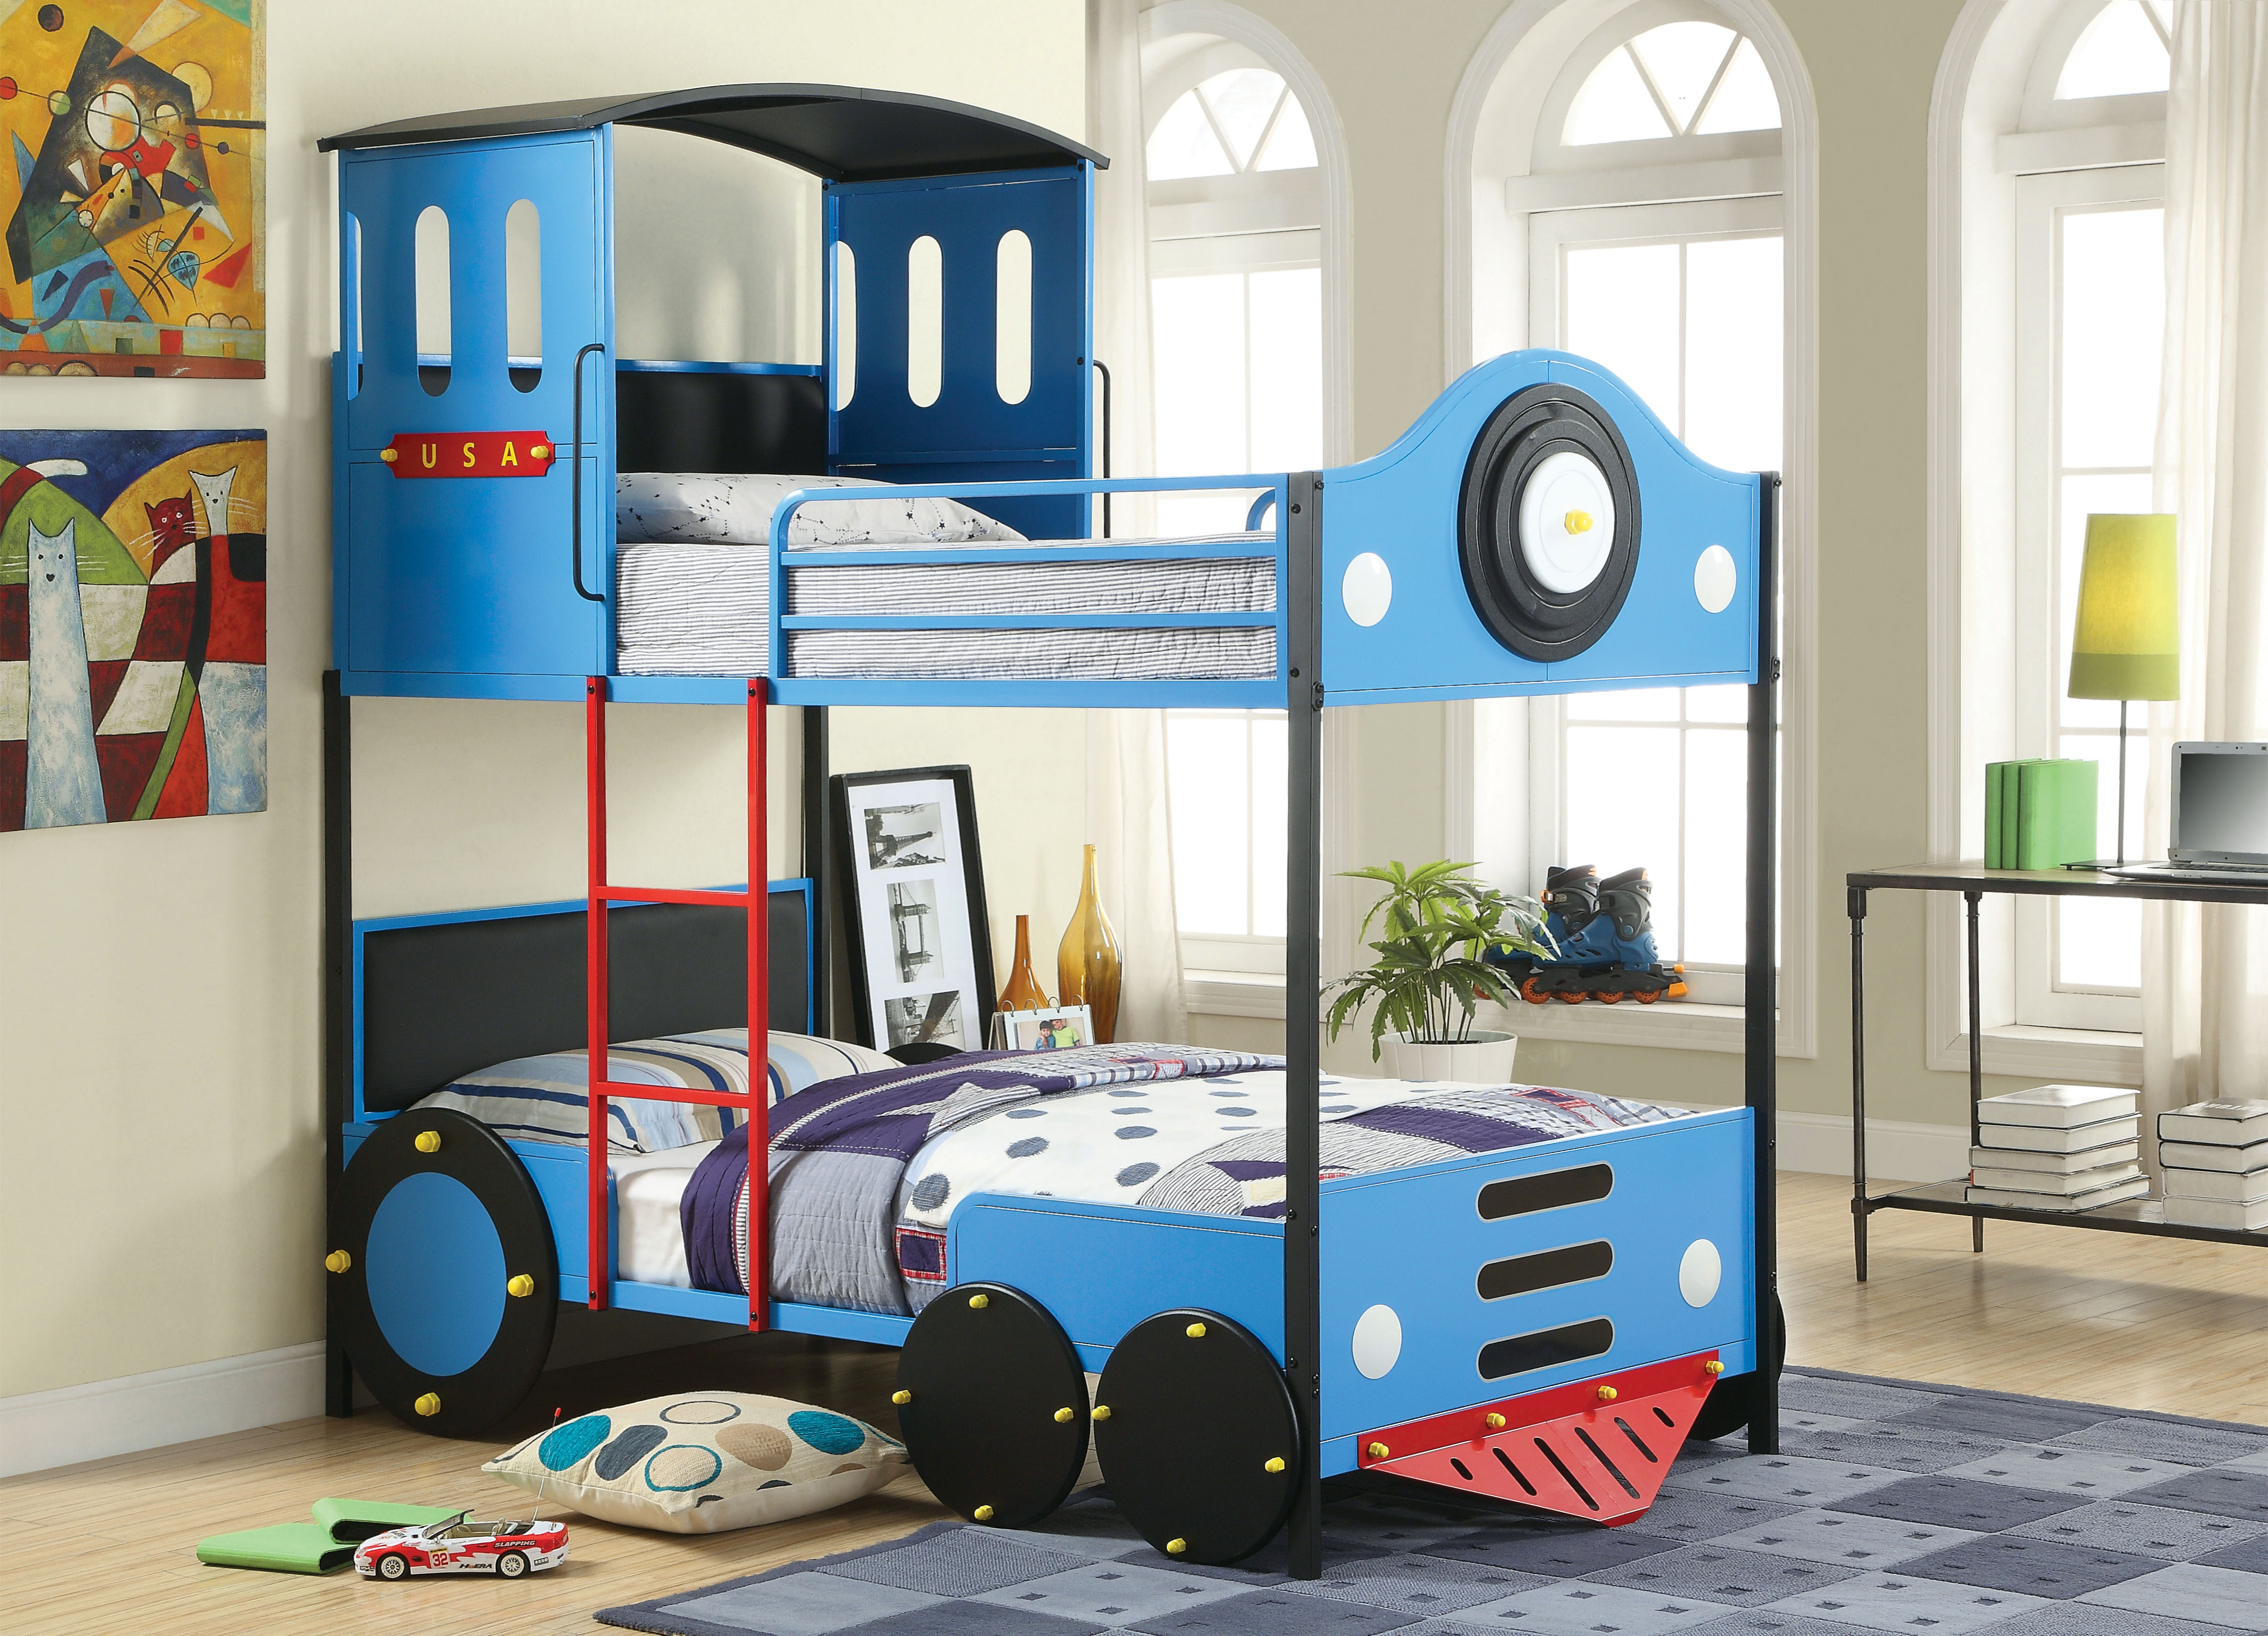 Furniture of America Blue Express Rail Twin over Twin Bunk Bed PartNumber: 00866416000P KsnValue: 7411242 MfgPartNumber: SJEG-CL3264